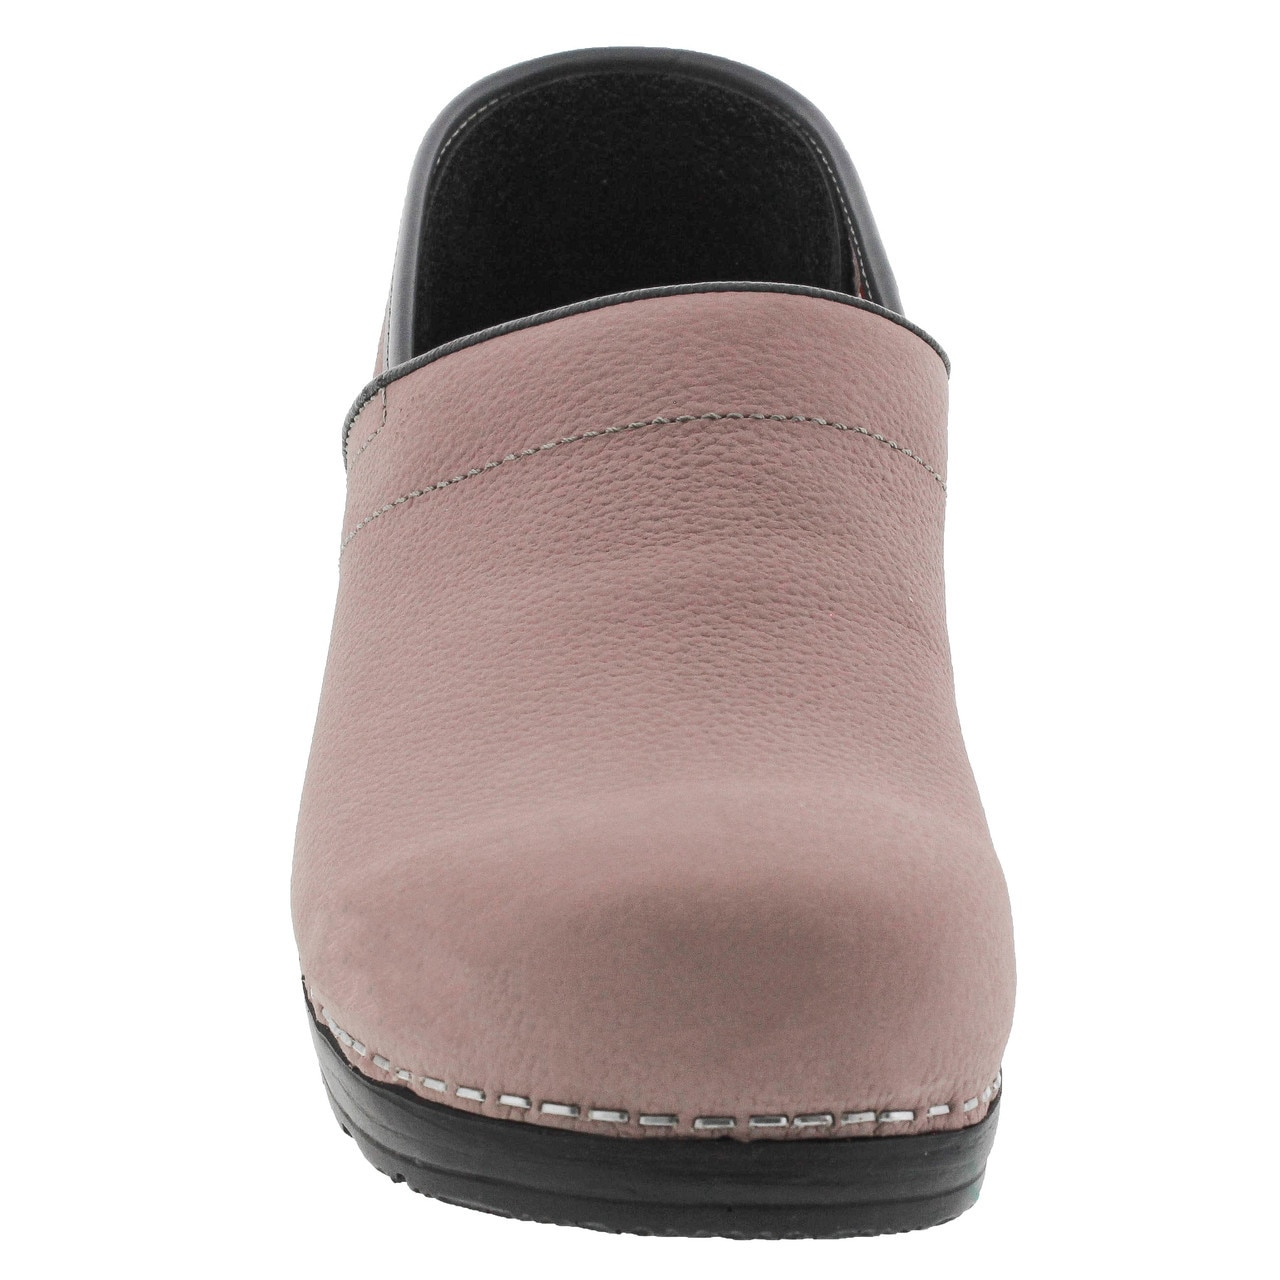 Signature by Sanita Women's Professional Textured Leather Clog